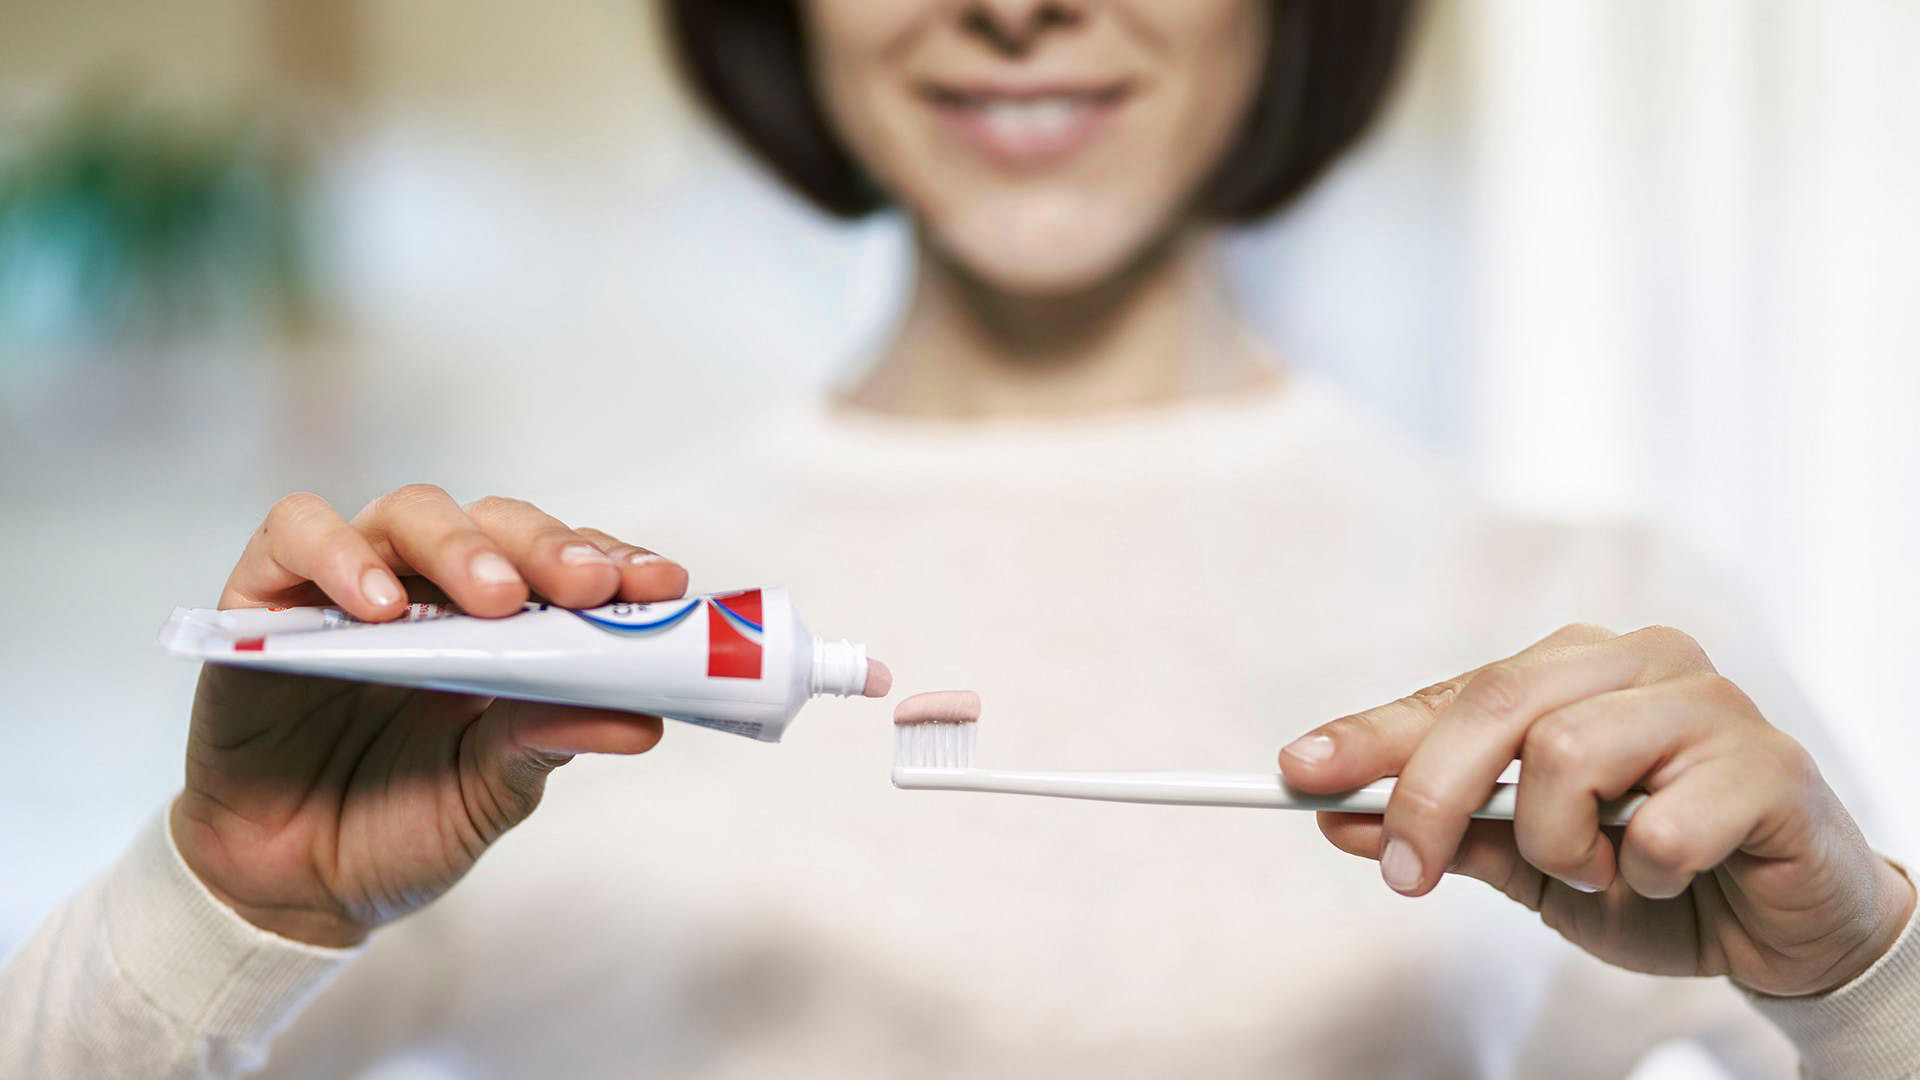 woman putting parodontax Complete Protection toothpaste onto a toothbrush